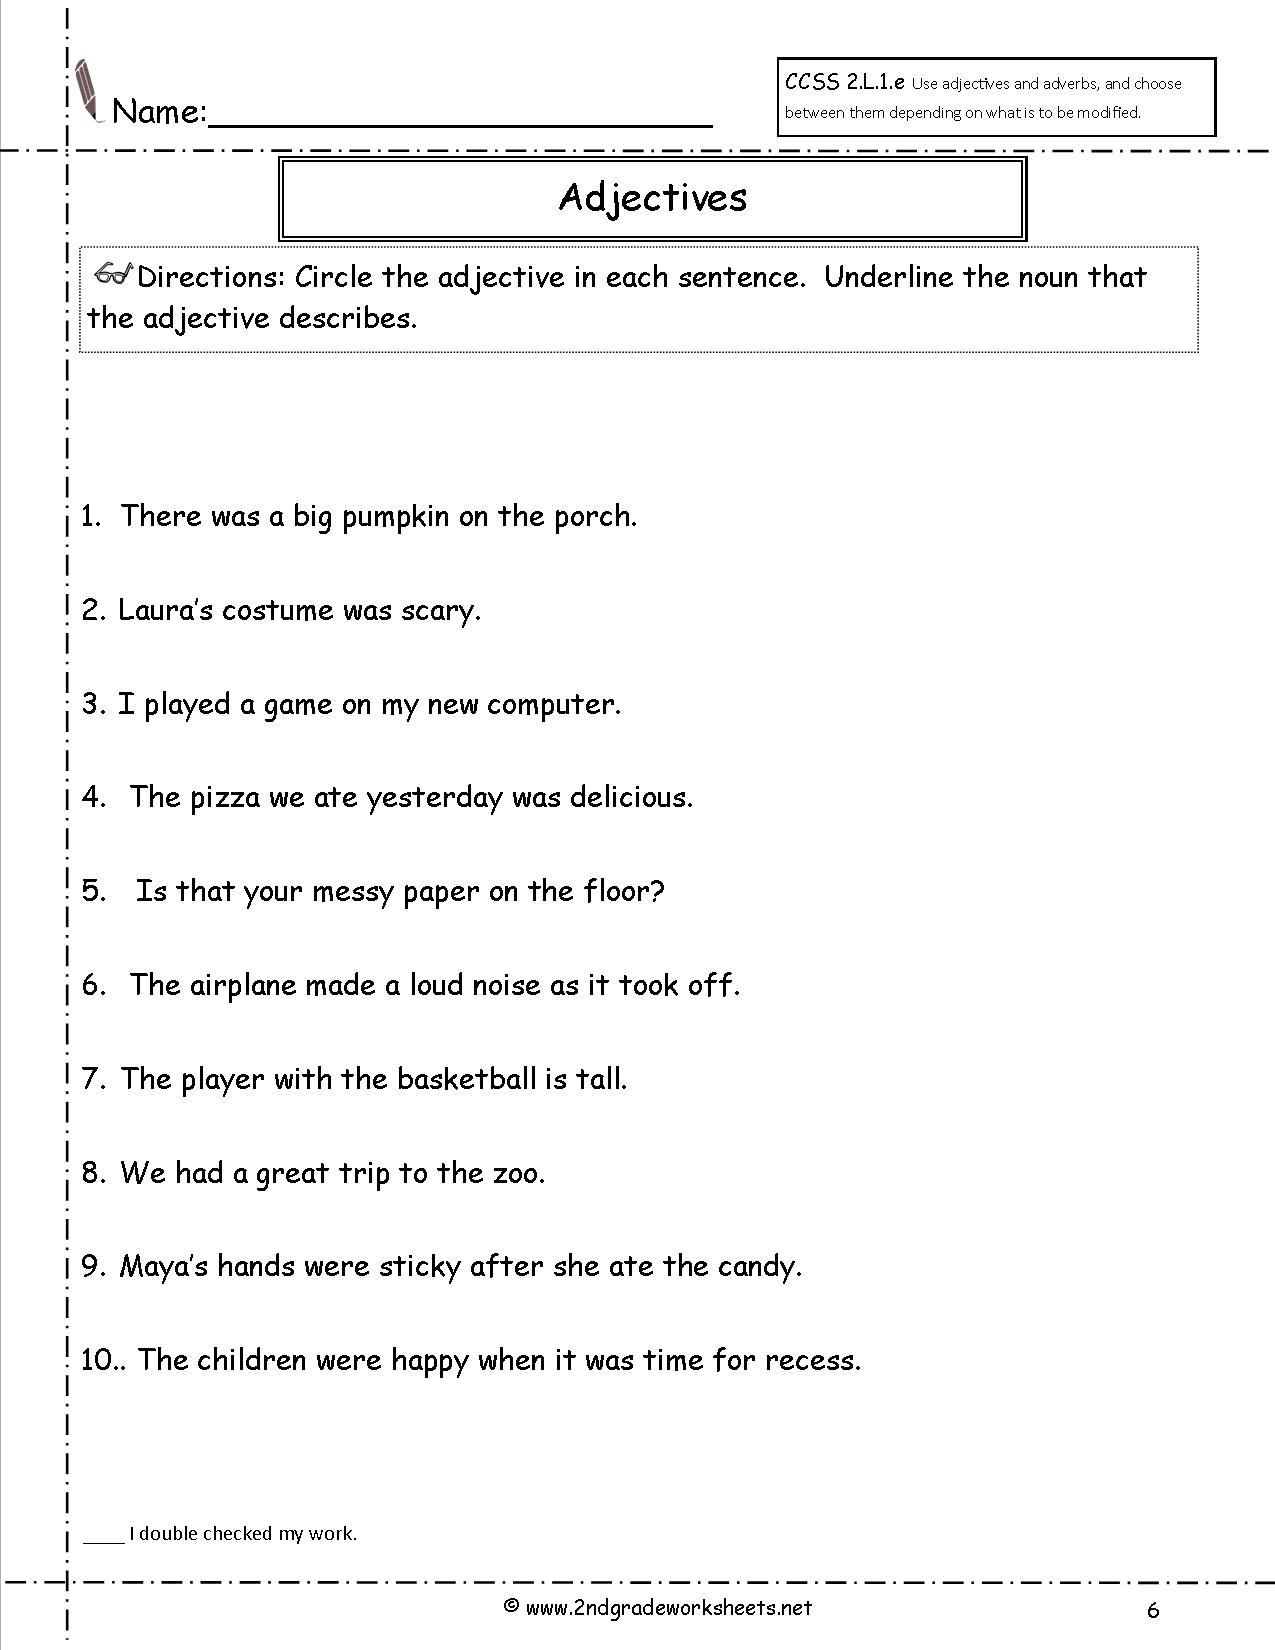 Worksheet Adjectives Worksheet For 3rd Grade worksheet using adjectives those worksheet